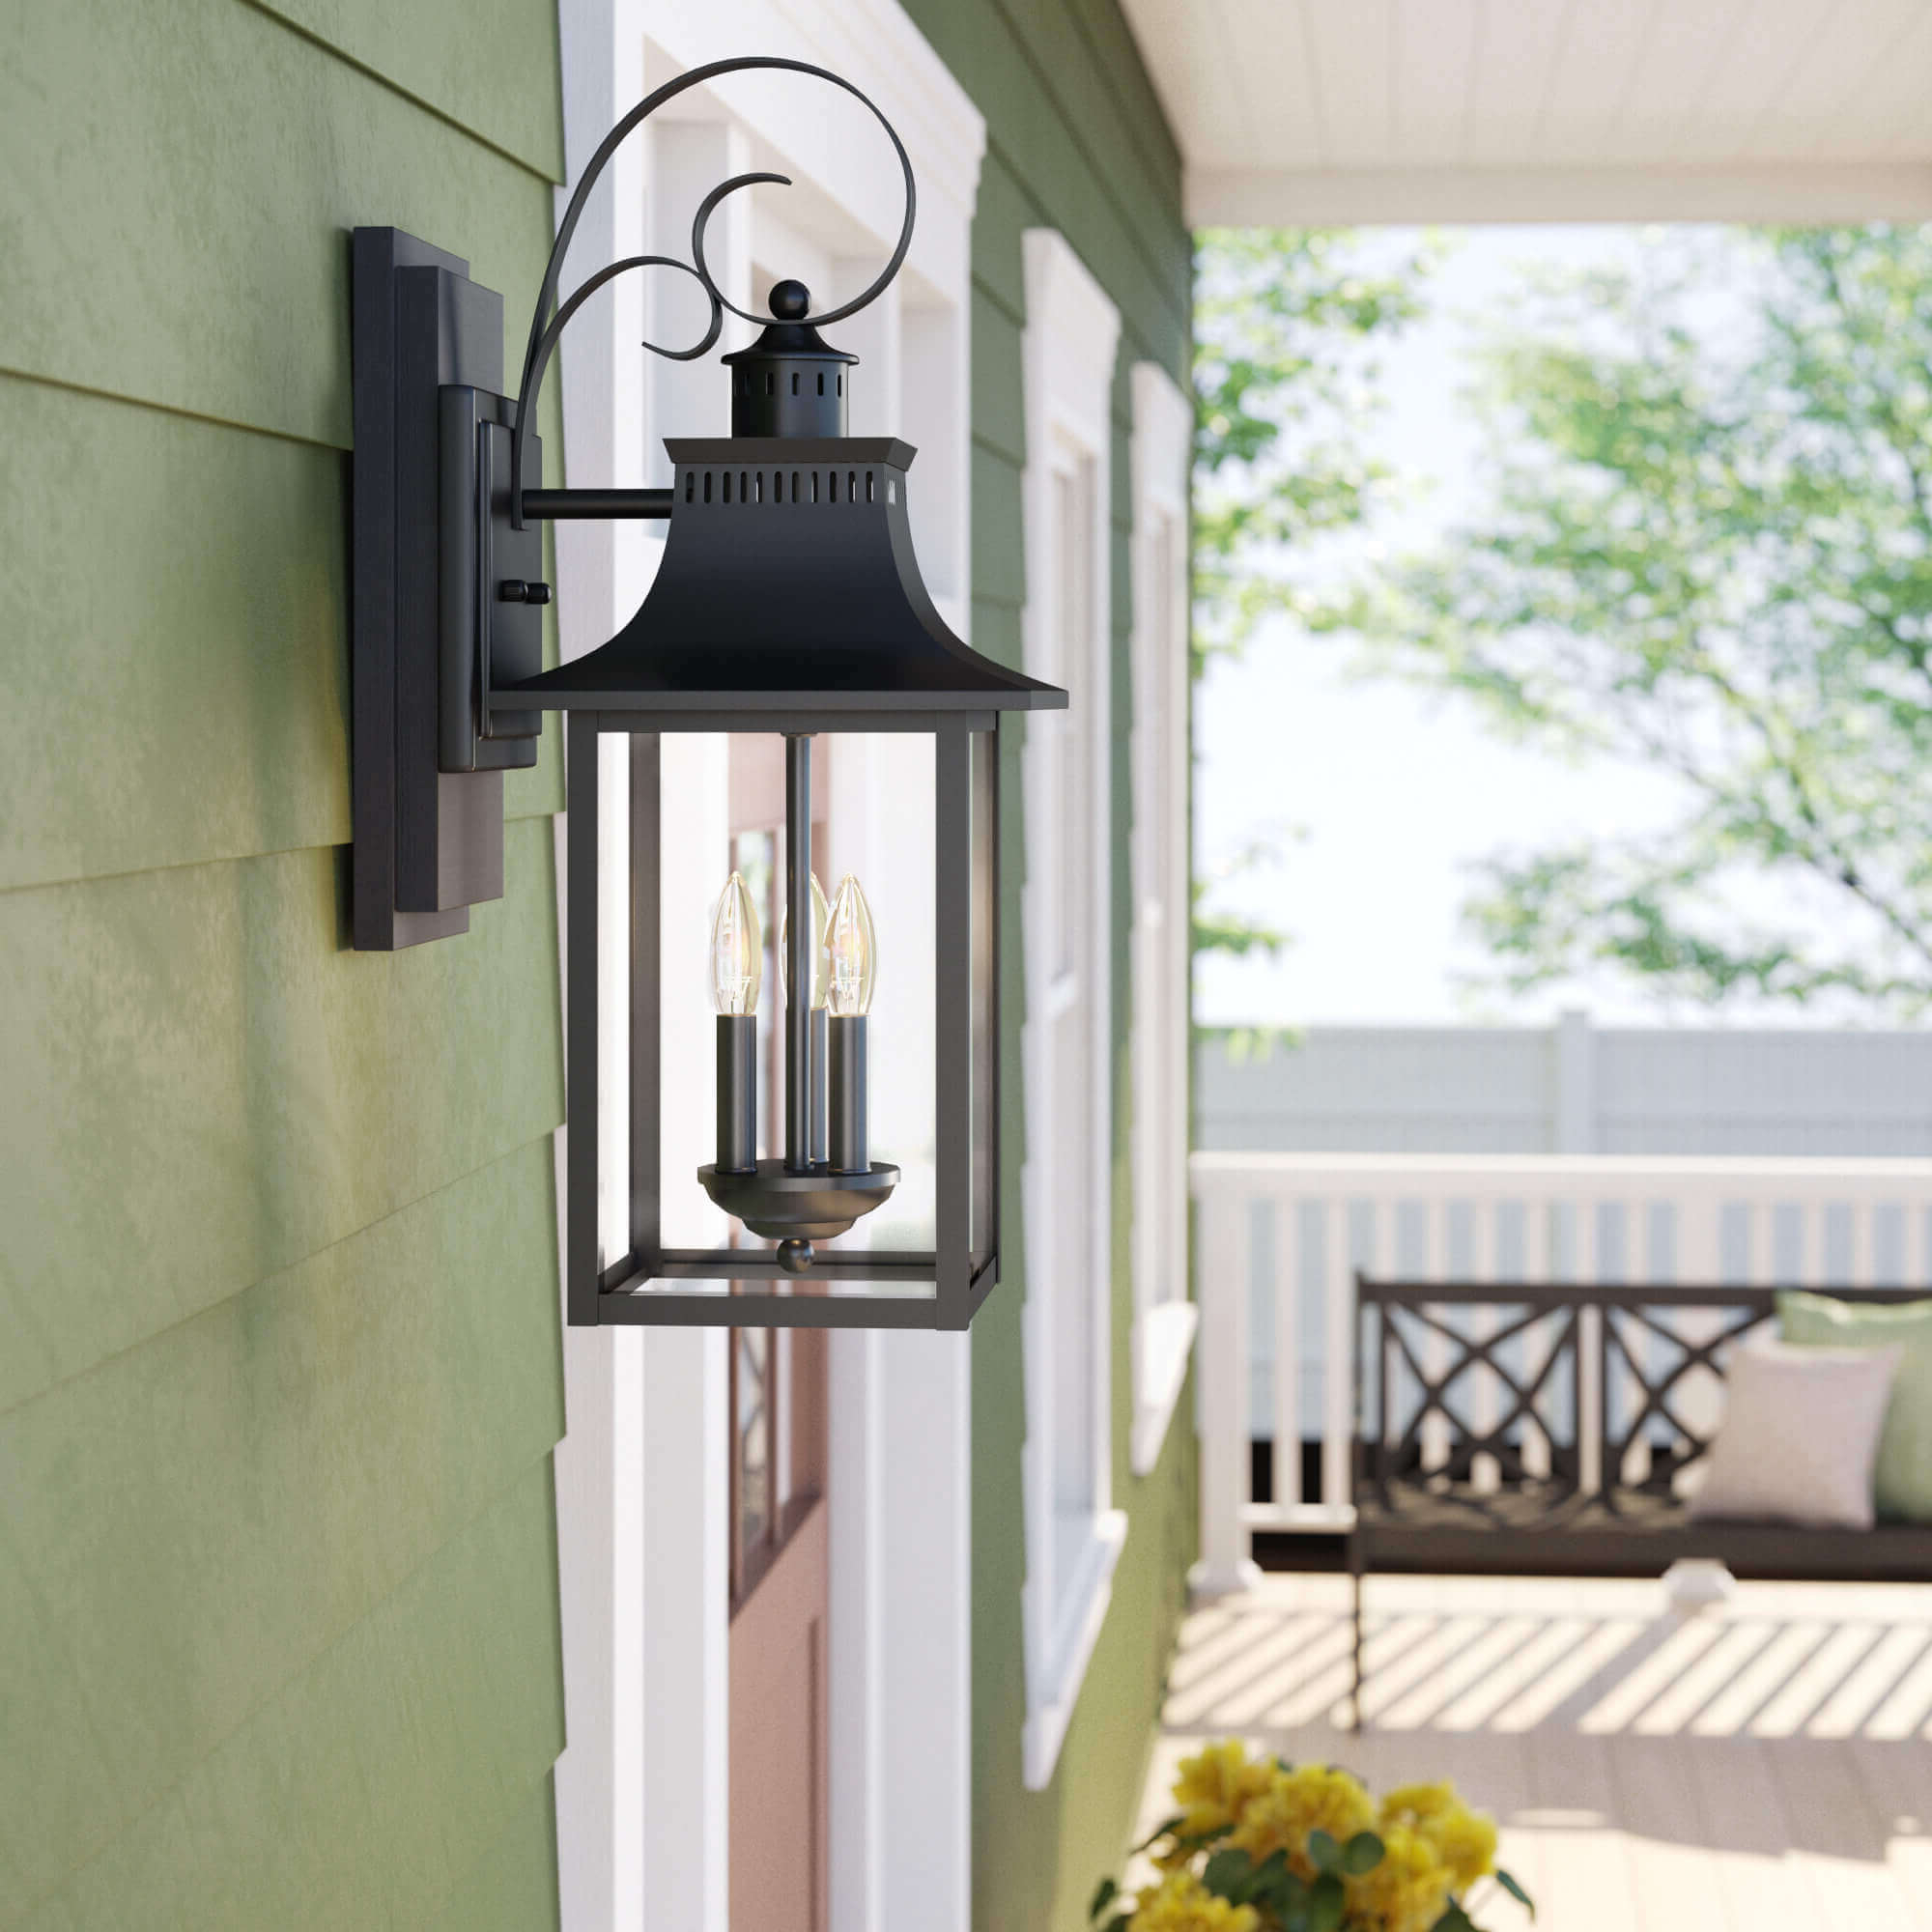 Mesmerizing Outdoor Wall Lights And Sconces Design Ideas Intended For 2018 Caroline Outdoor Wall Lanterns (View 2 of 15)